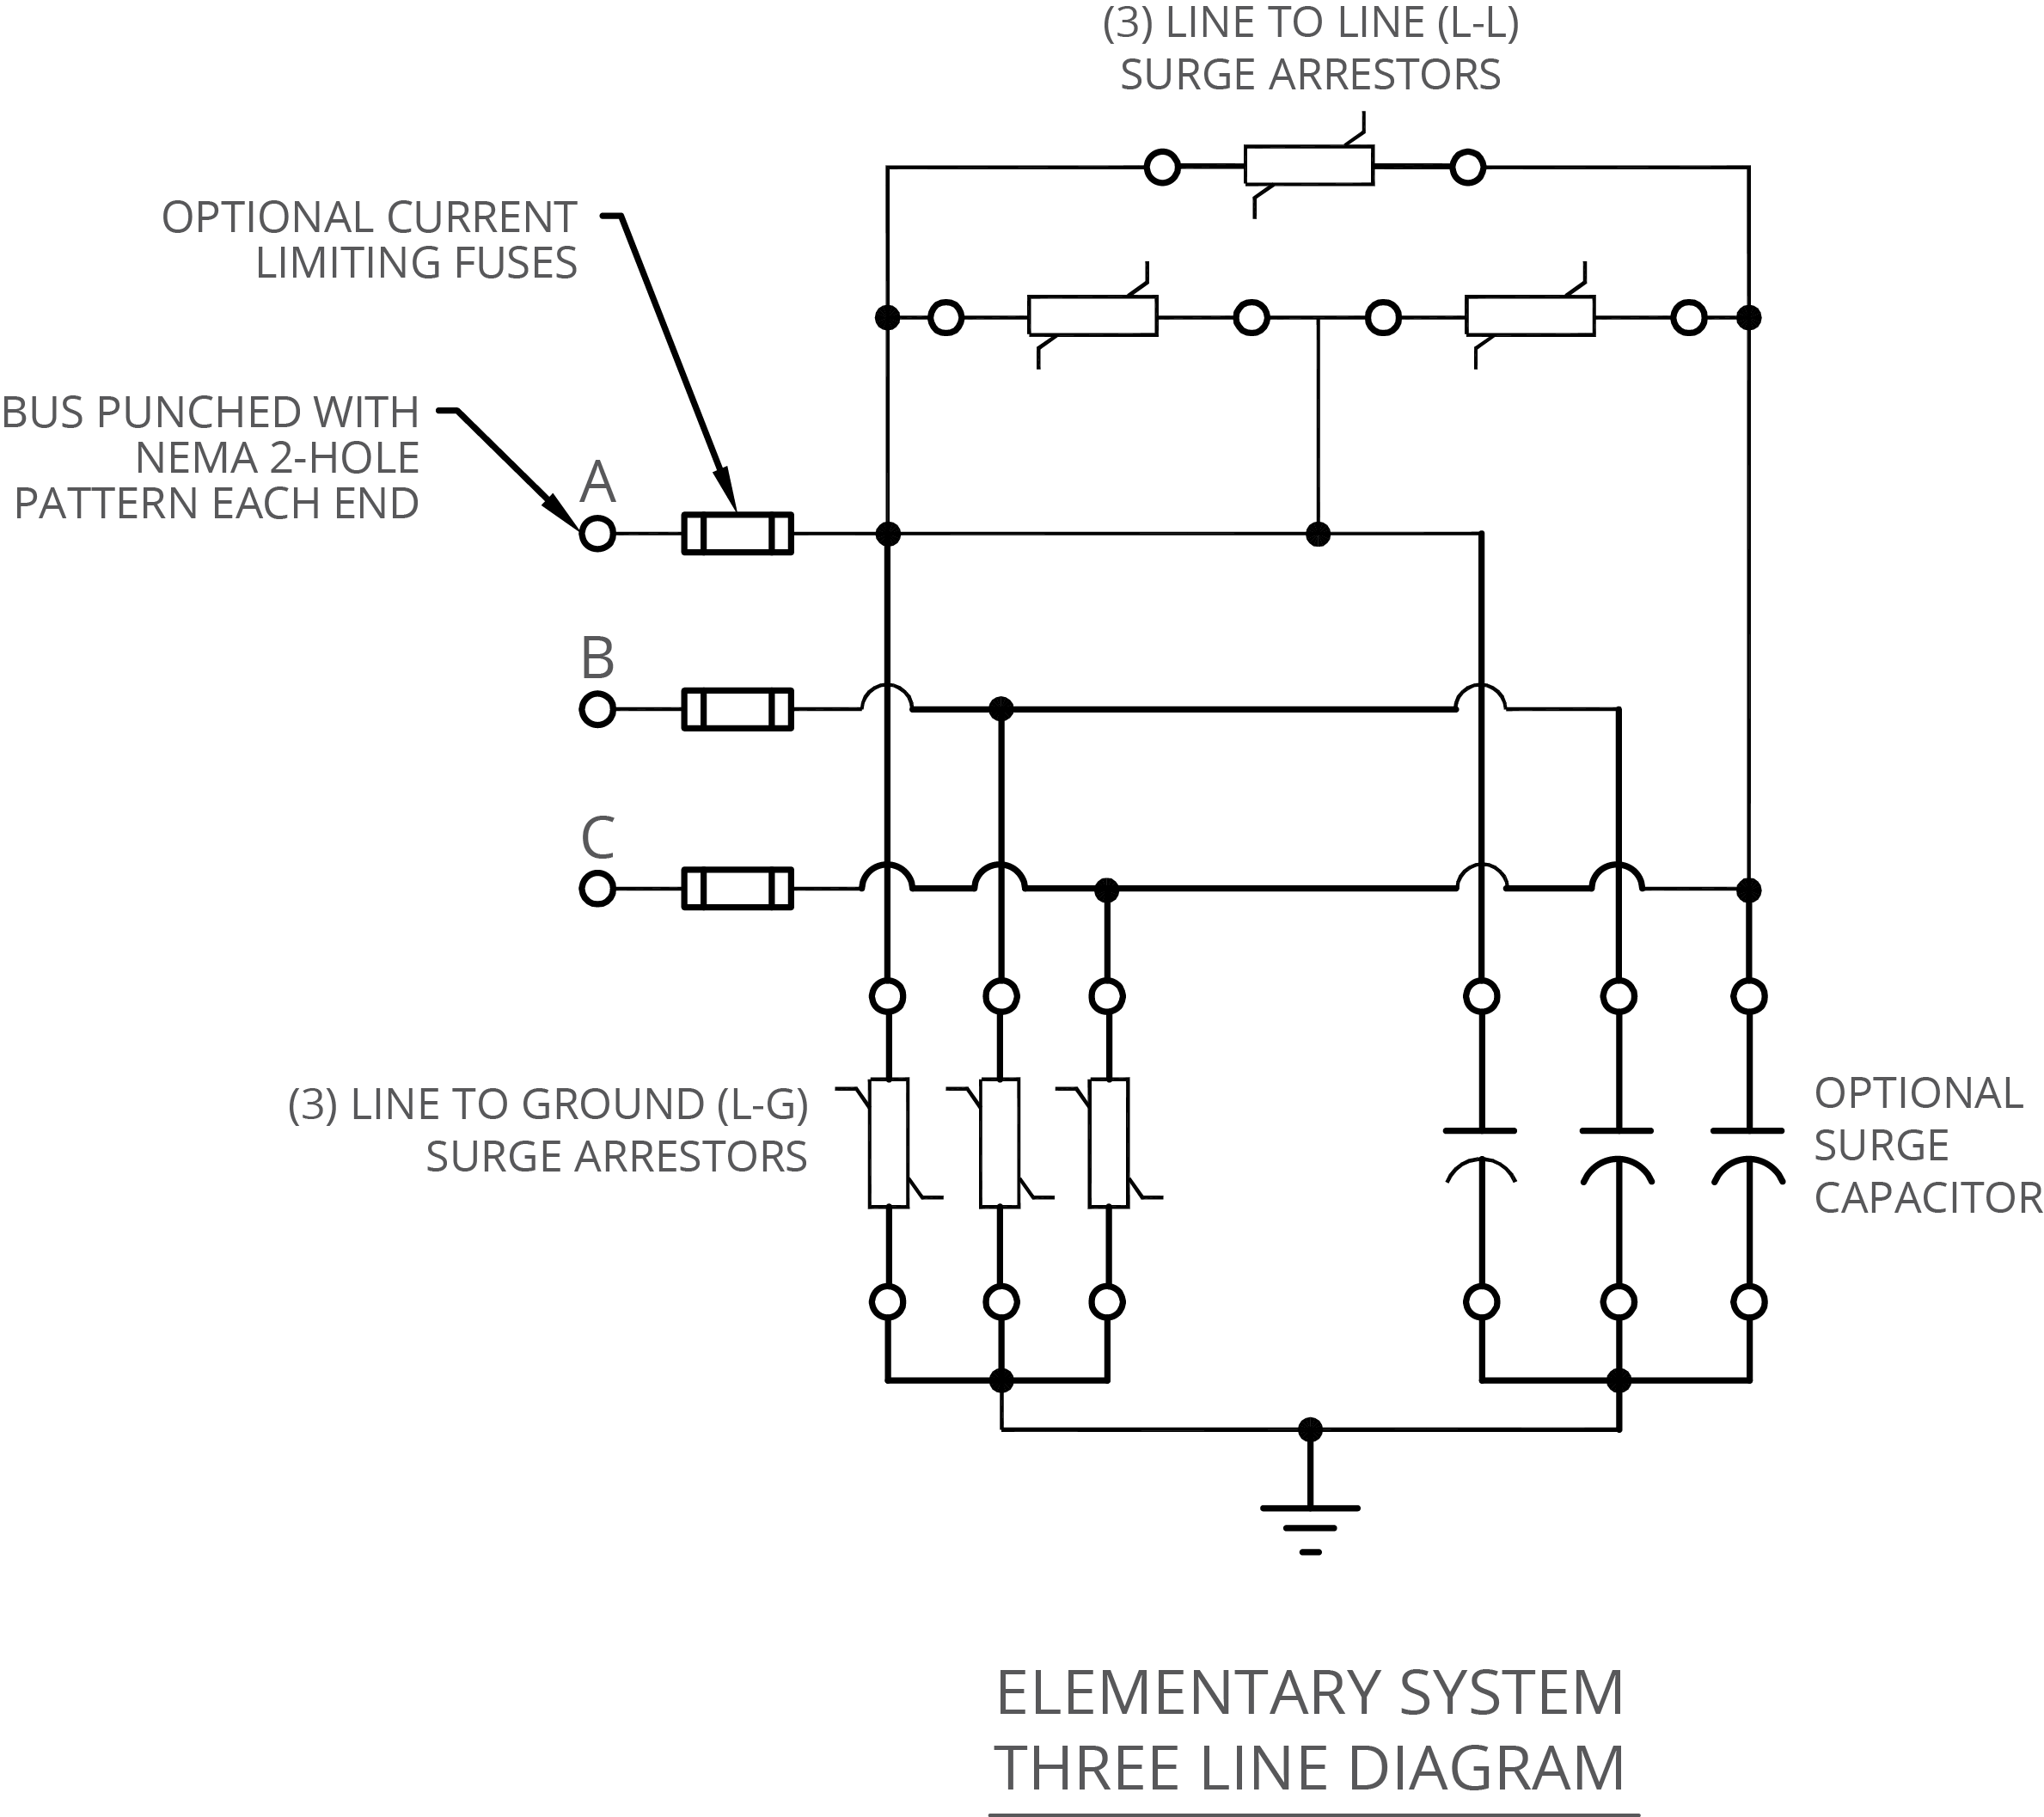 NEPSI - Medium Voltage - Transient Voltage Surge Suppression (MV-TVSS) | Tvss Wiring Diagram |  | NEPSI